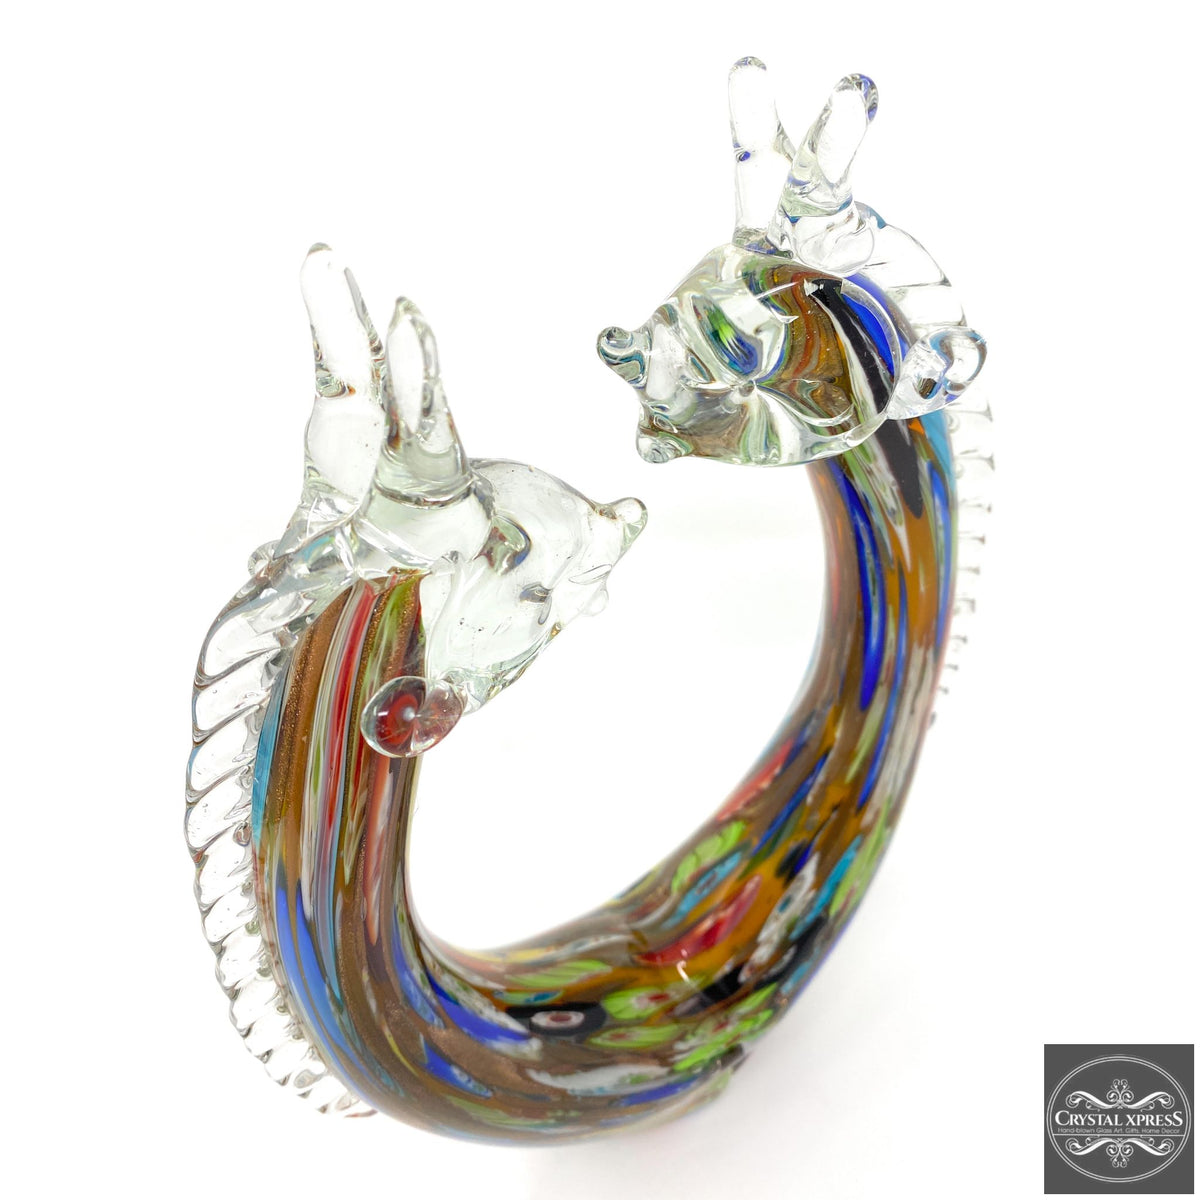 "13"" Limited Quantity Hand Blown Glass Abstract Art Colorful Giraffe SculptureCrystal Xpress"